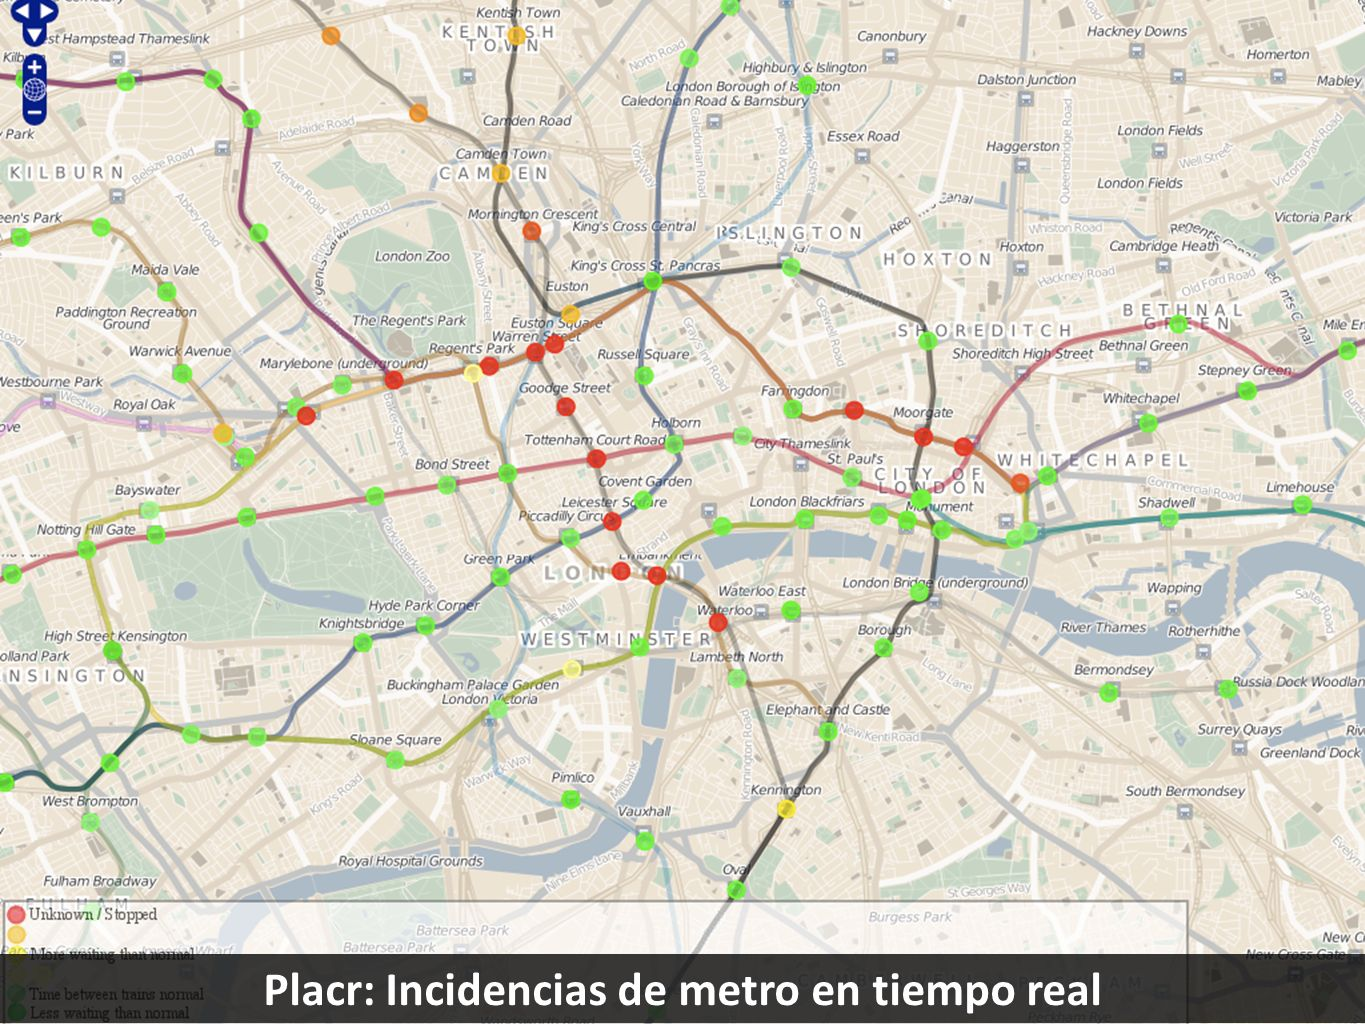 Placr: Incidencias de metro en tiempo real